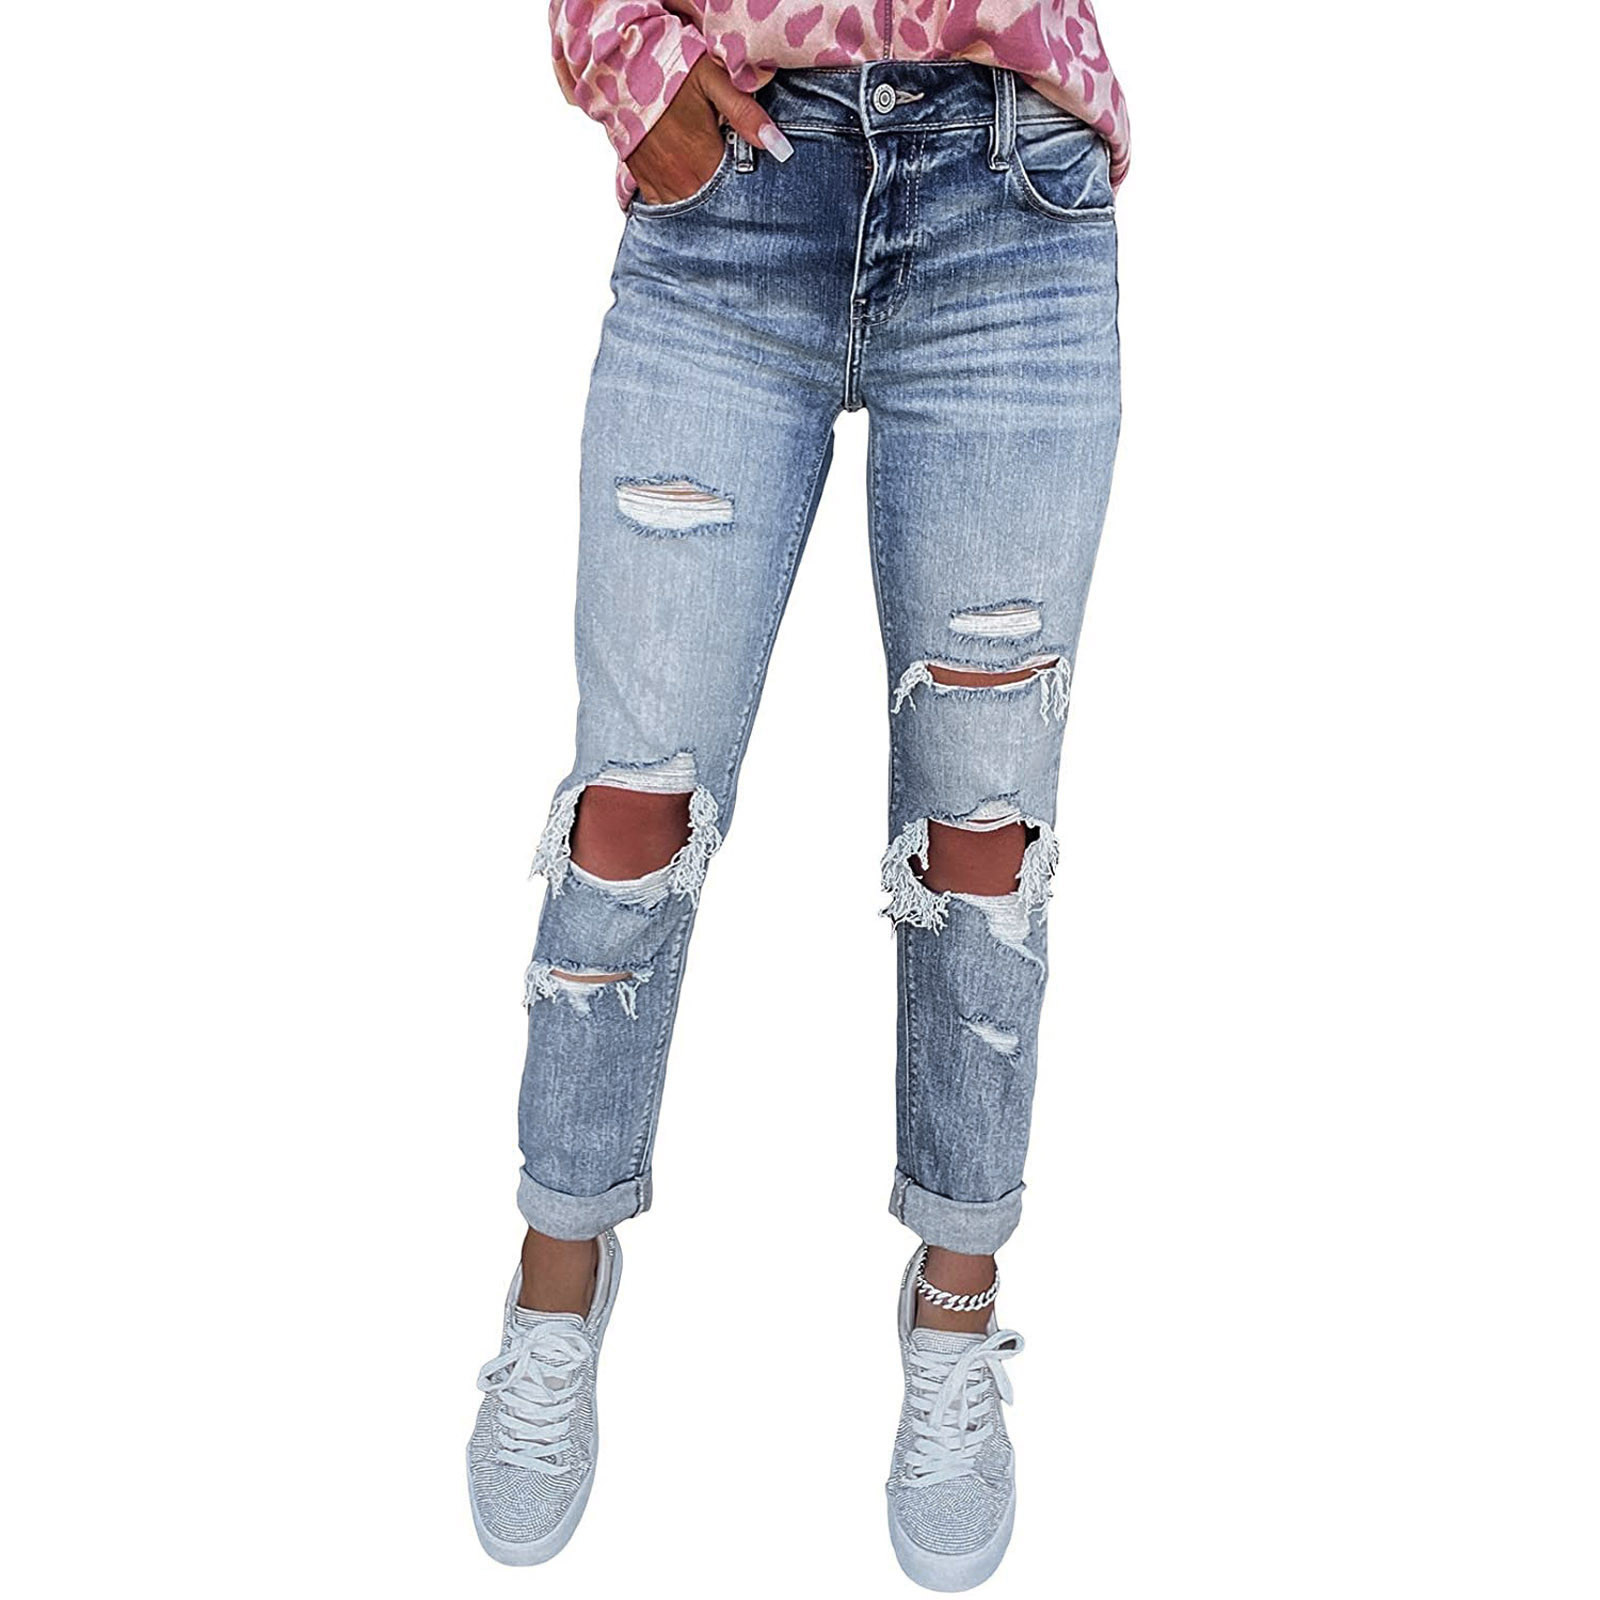 Jeans Woman High Waist Straight Fashion Solid Pockets Slim-Fit Skinny Denim Ripped Jeans Casual Pants